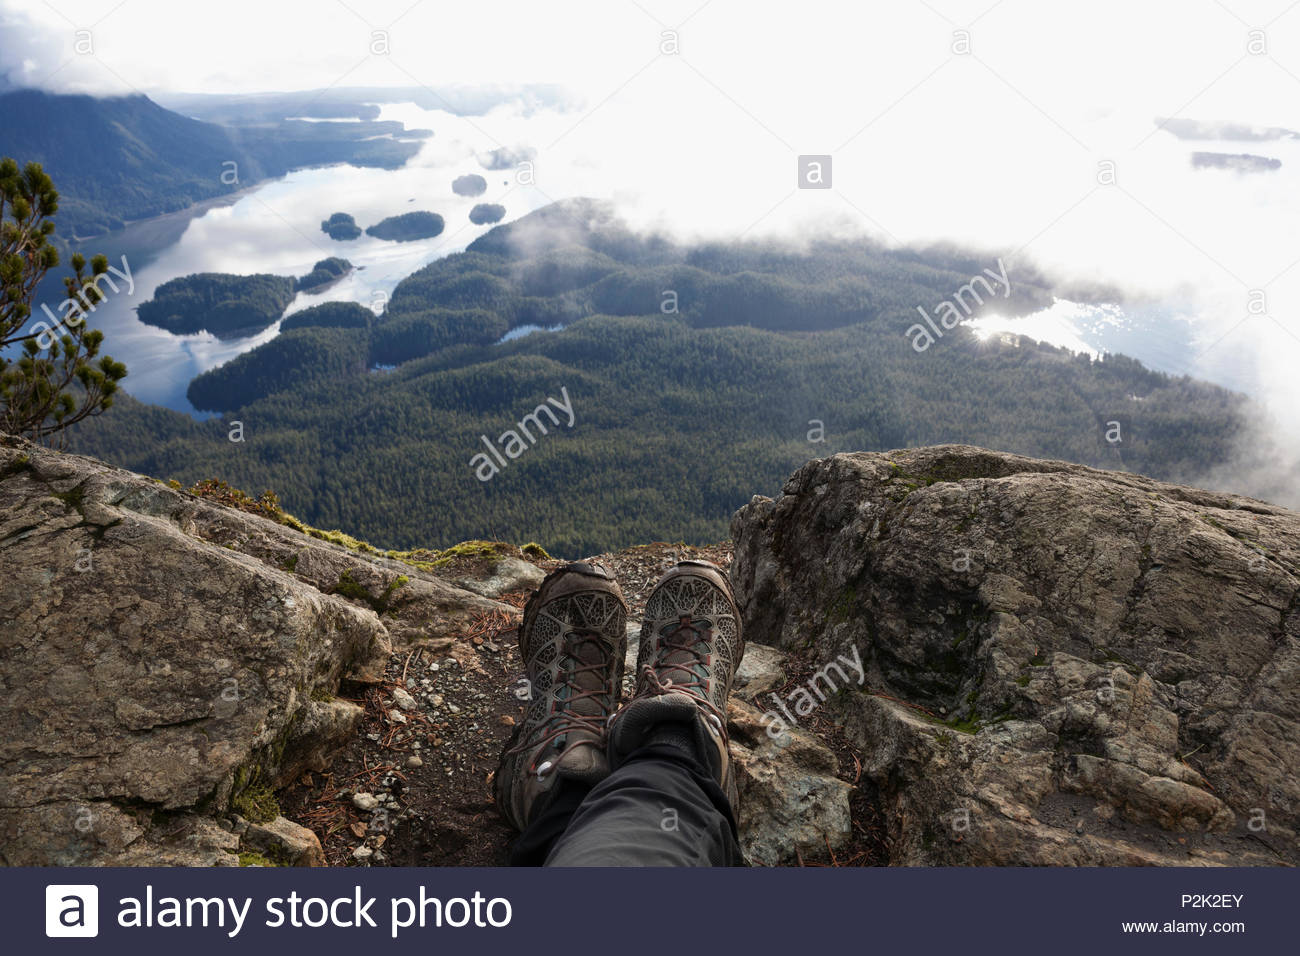 Personal perspective hiker resting, enjoying scenic view - Stock Image